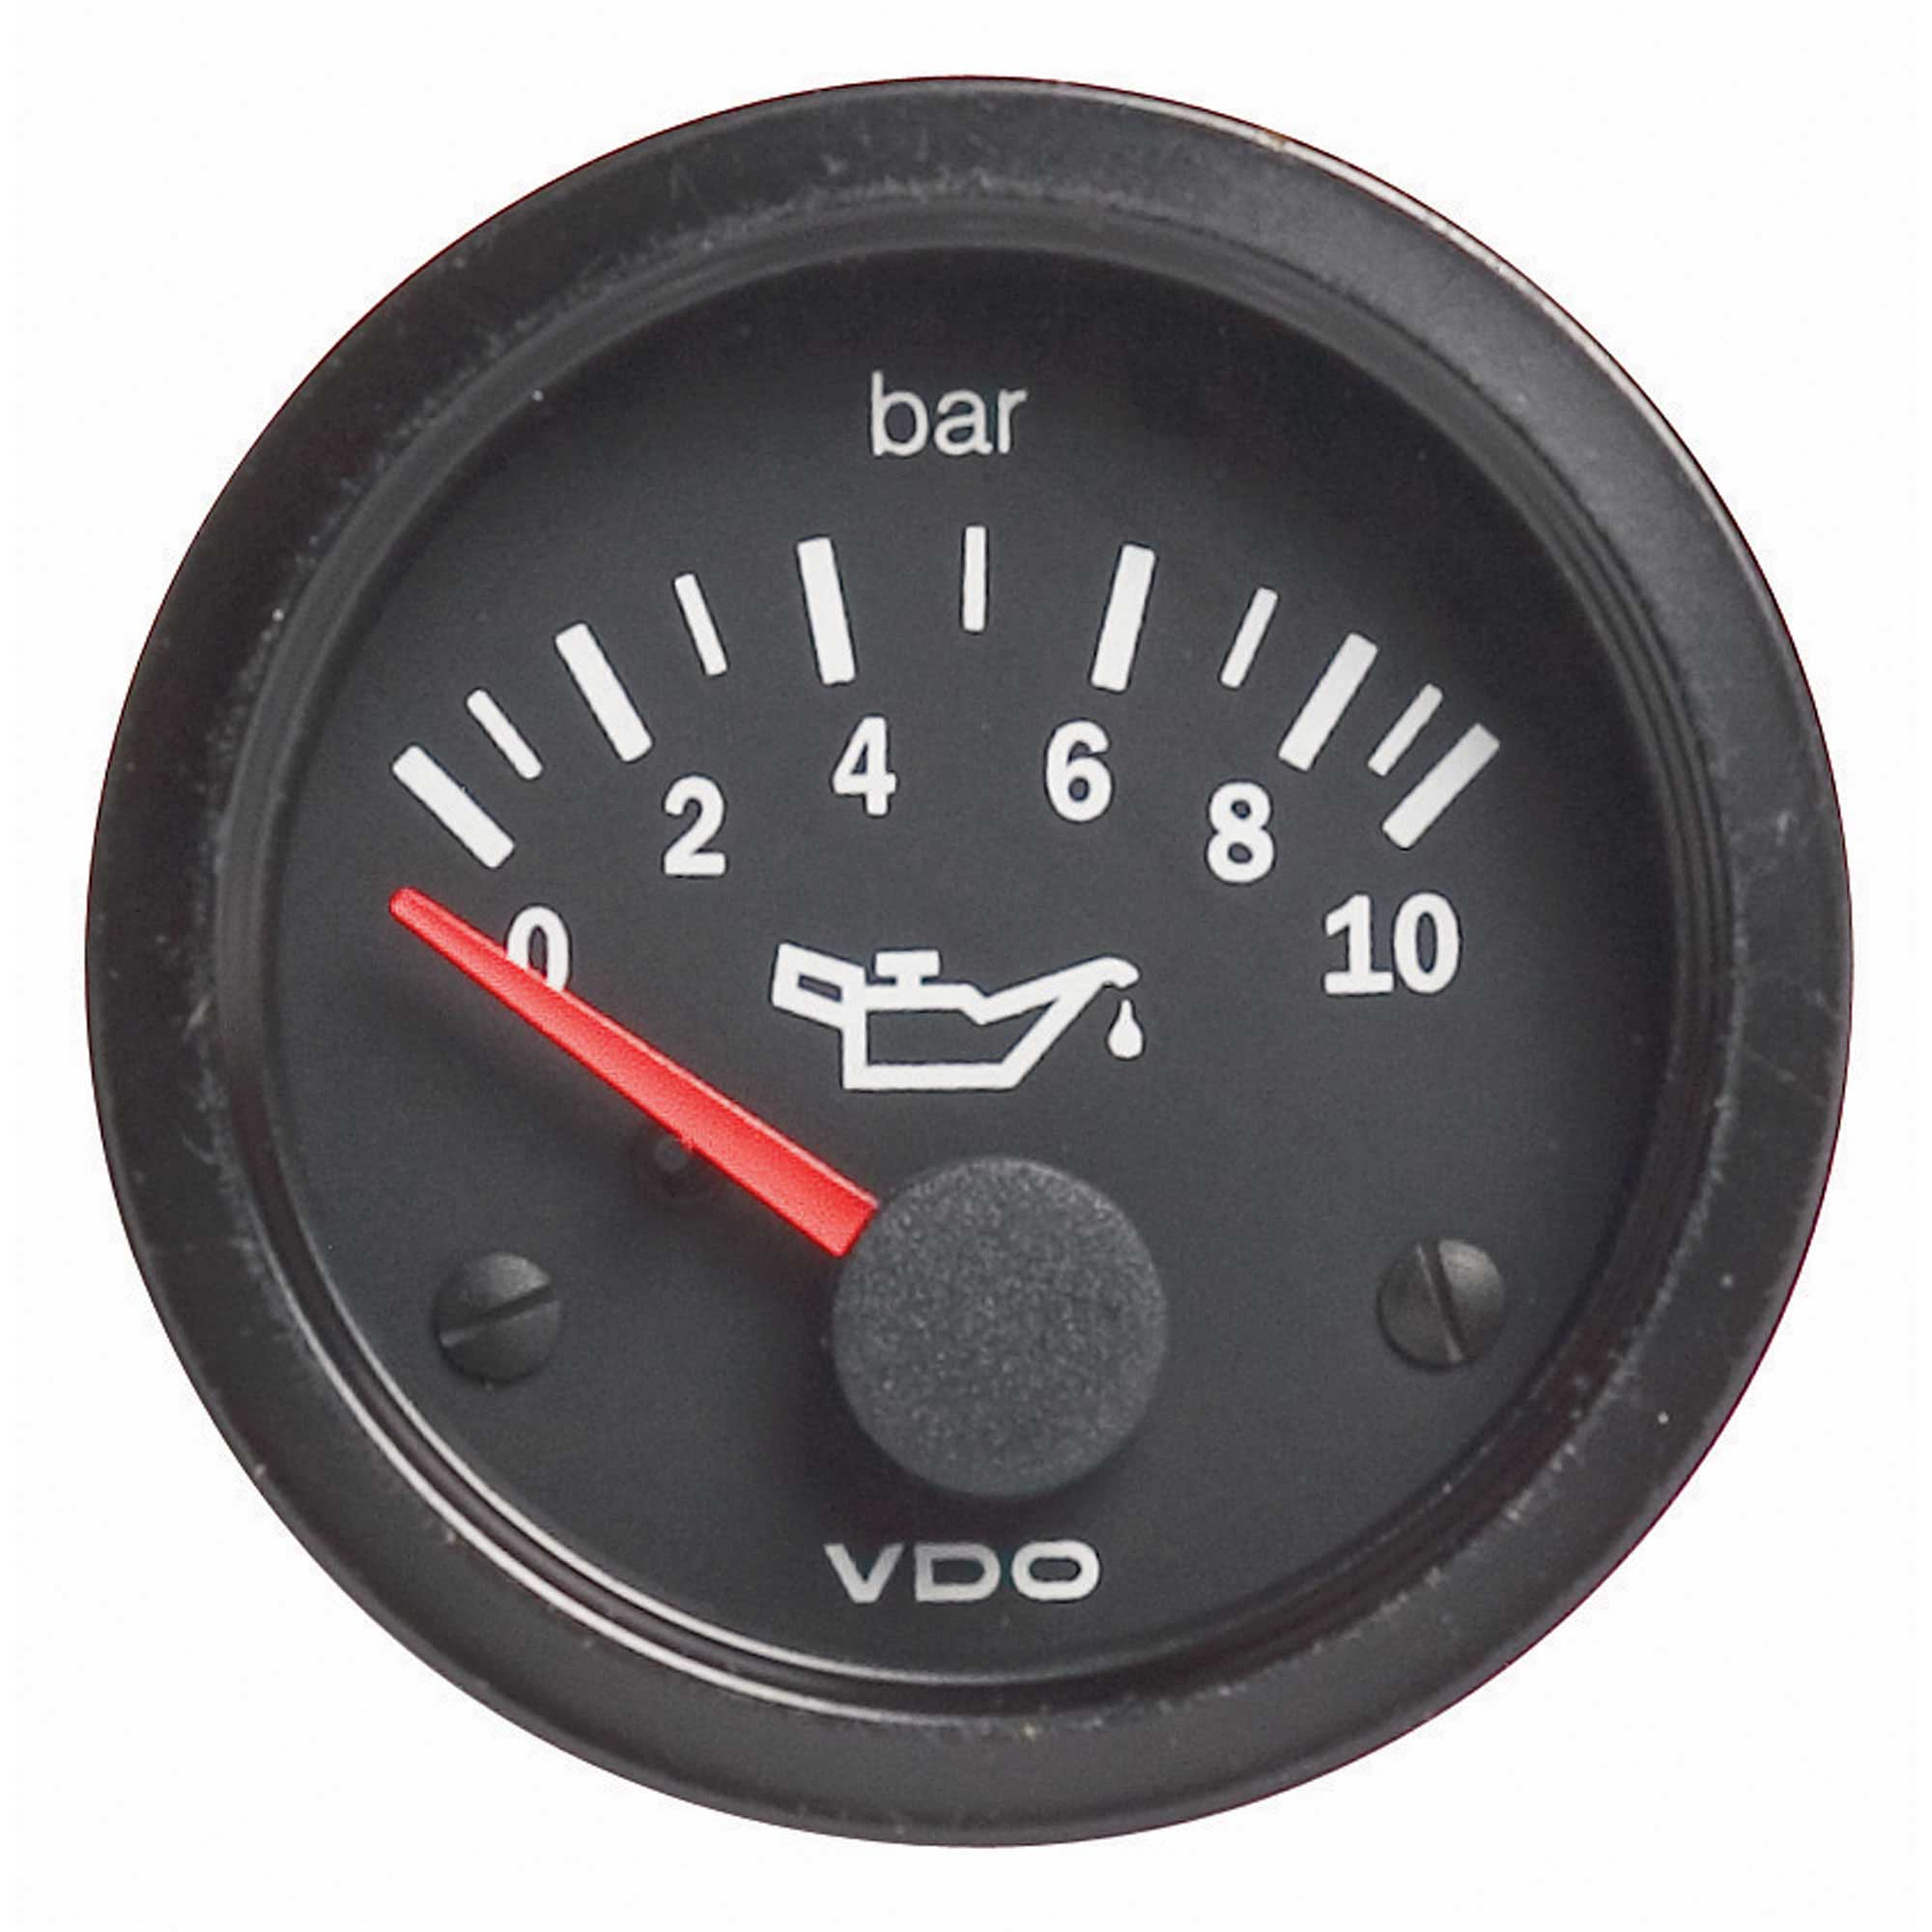 VDO Vision Oil Pressure Electrical Gauge Black Face Dial